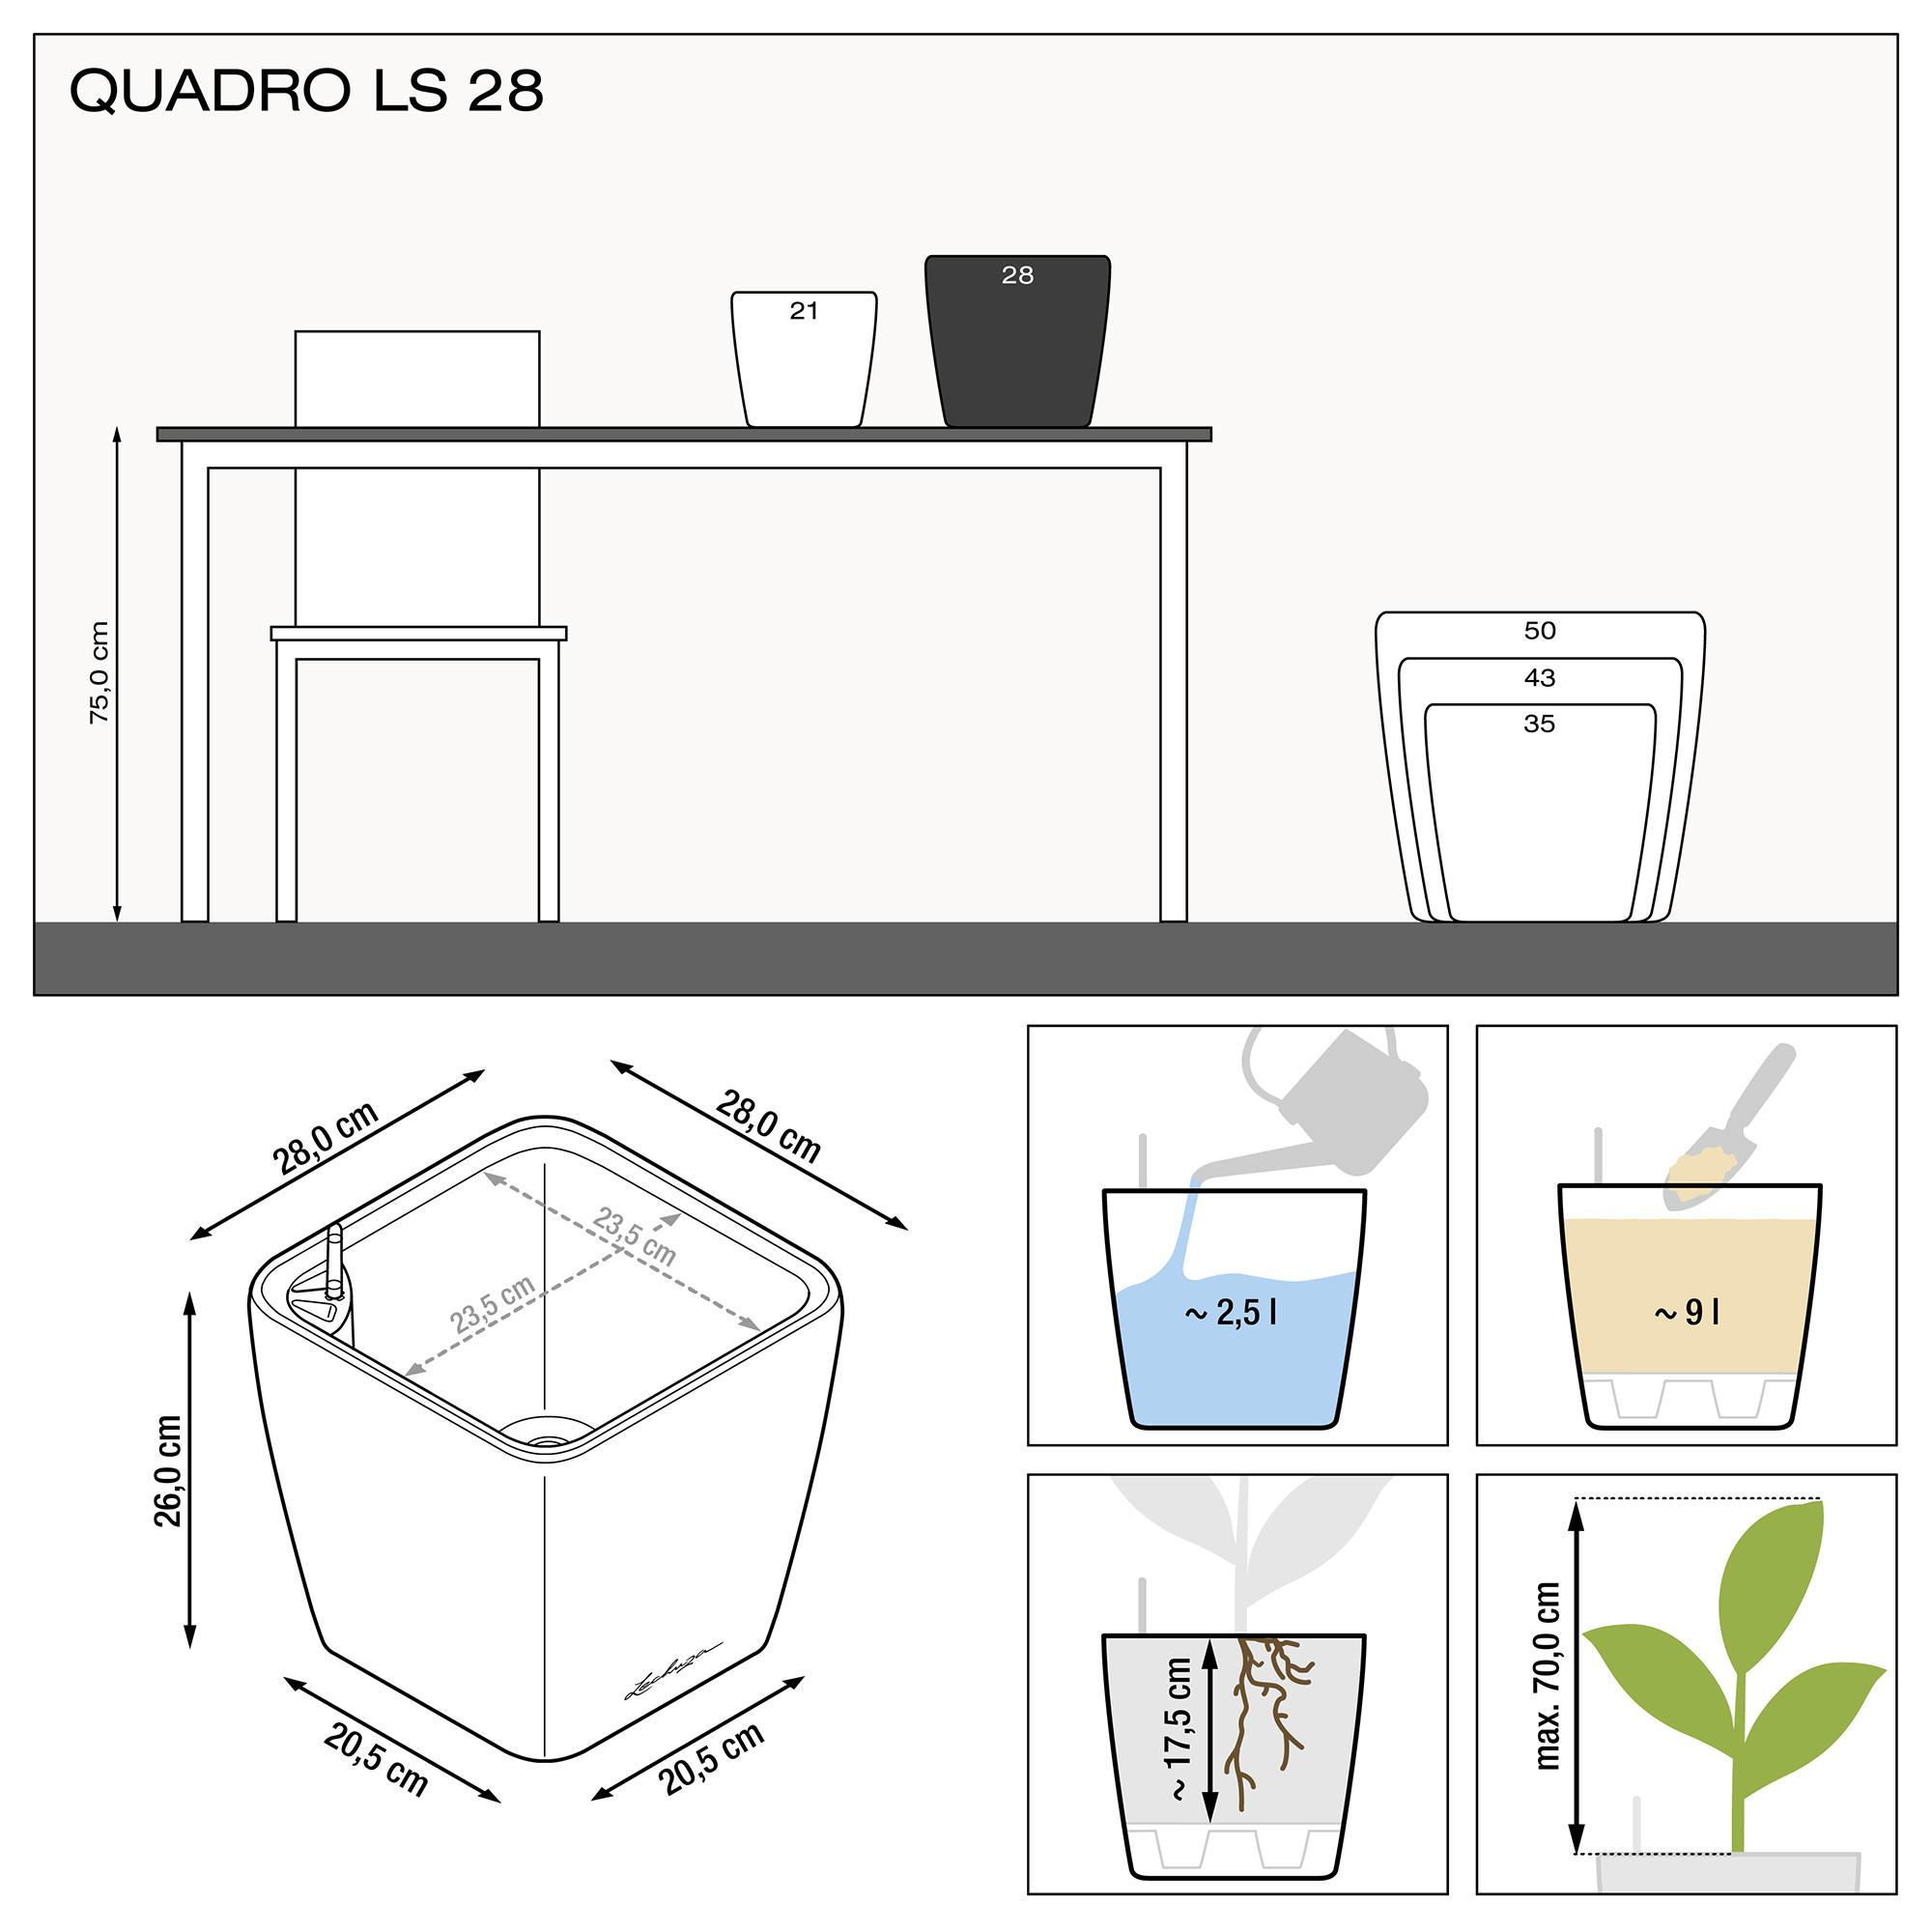 QUADRO LS 28 white high-gloss - Image 3